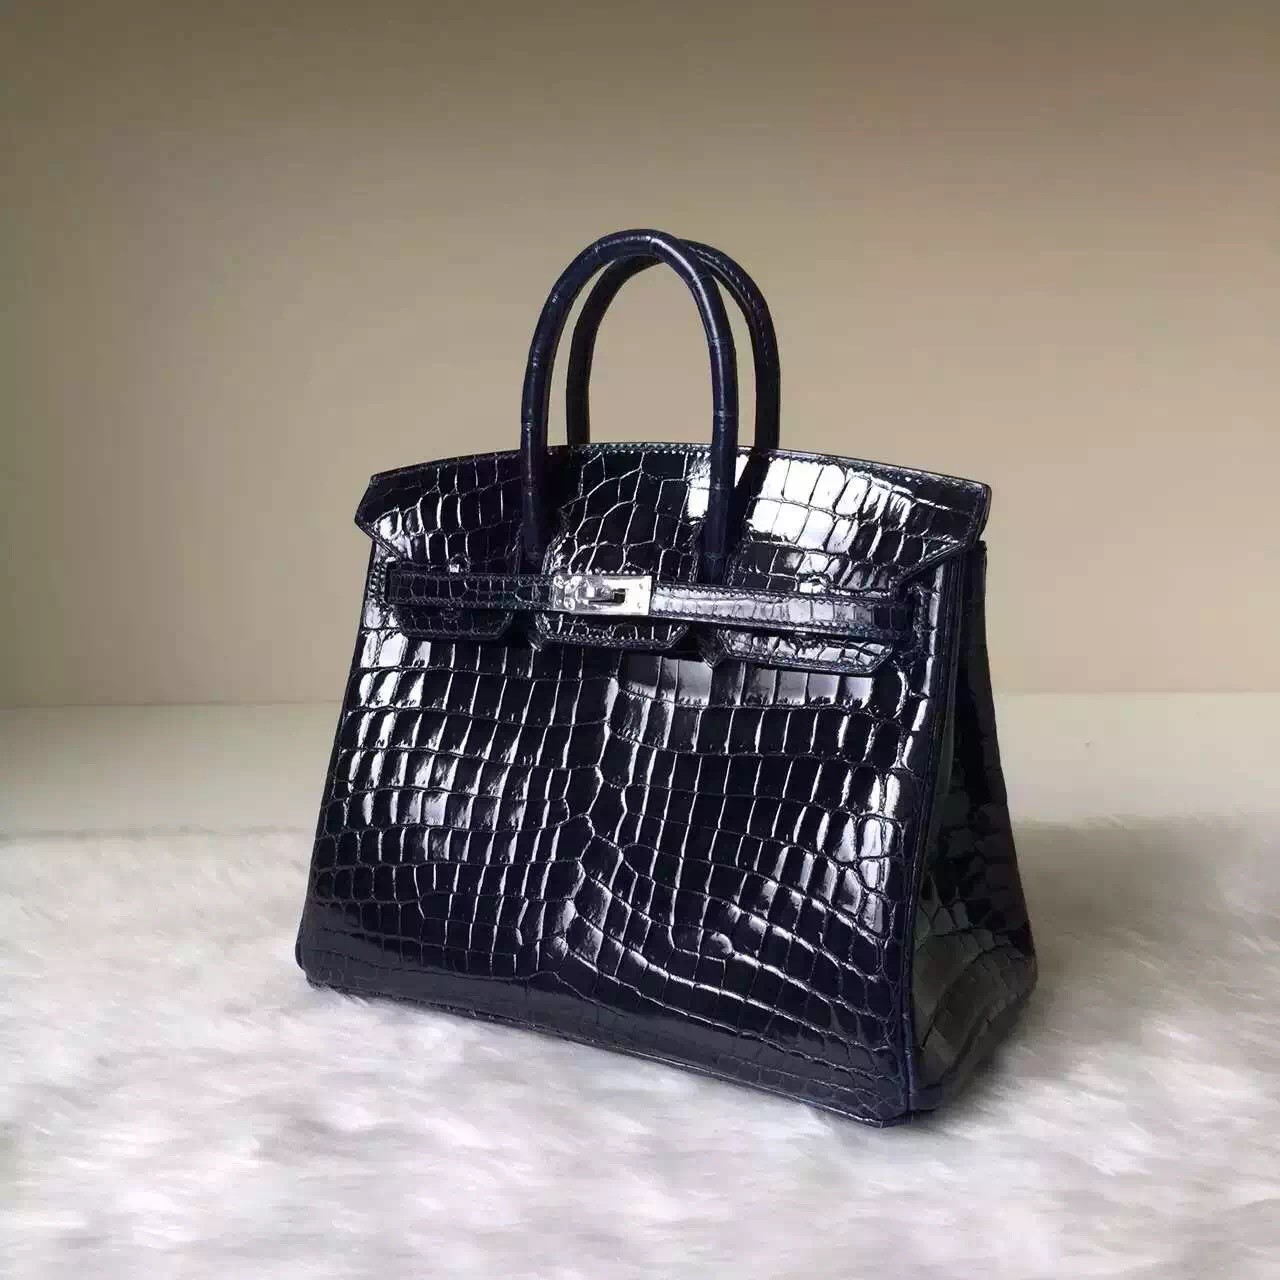 Wholesale Hermes 73 Blue Saphir Crocodile Shiny Leather Birkin Bag25cm